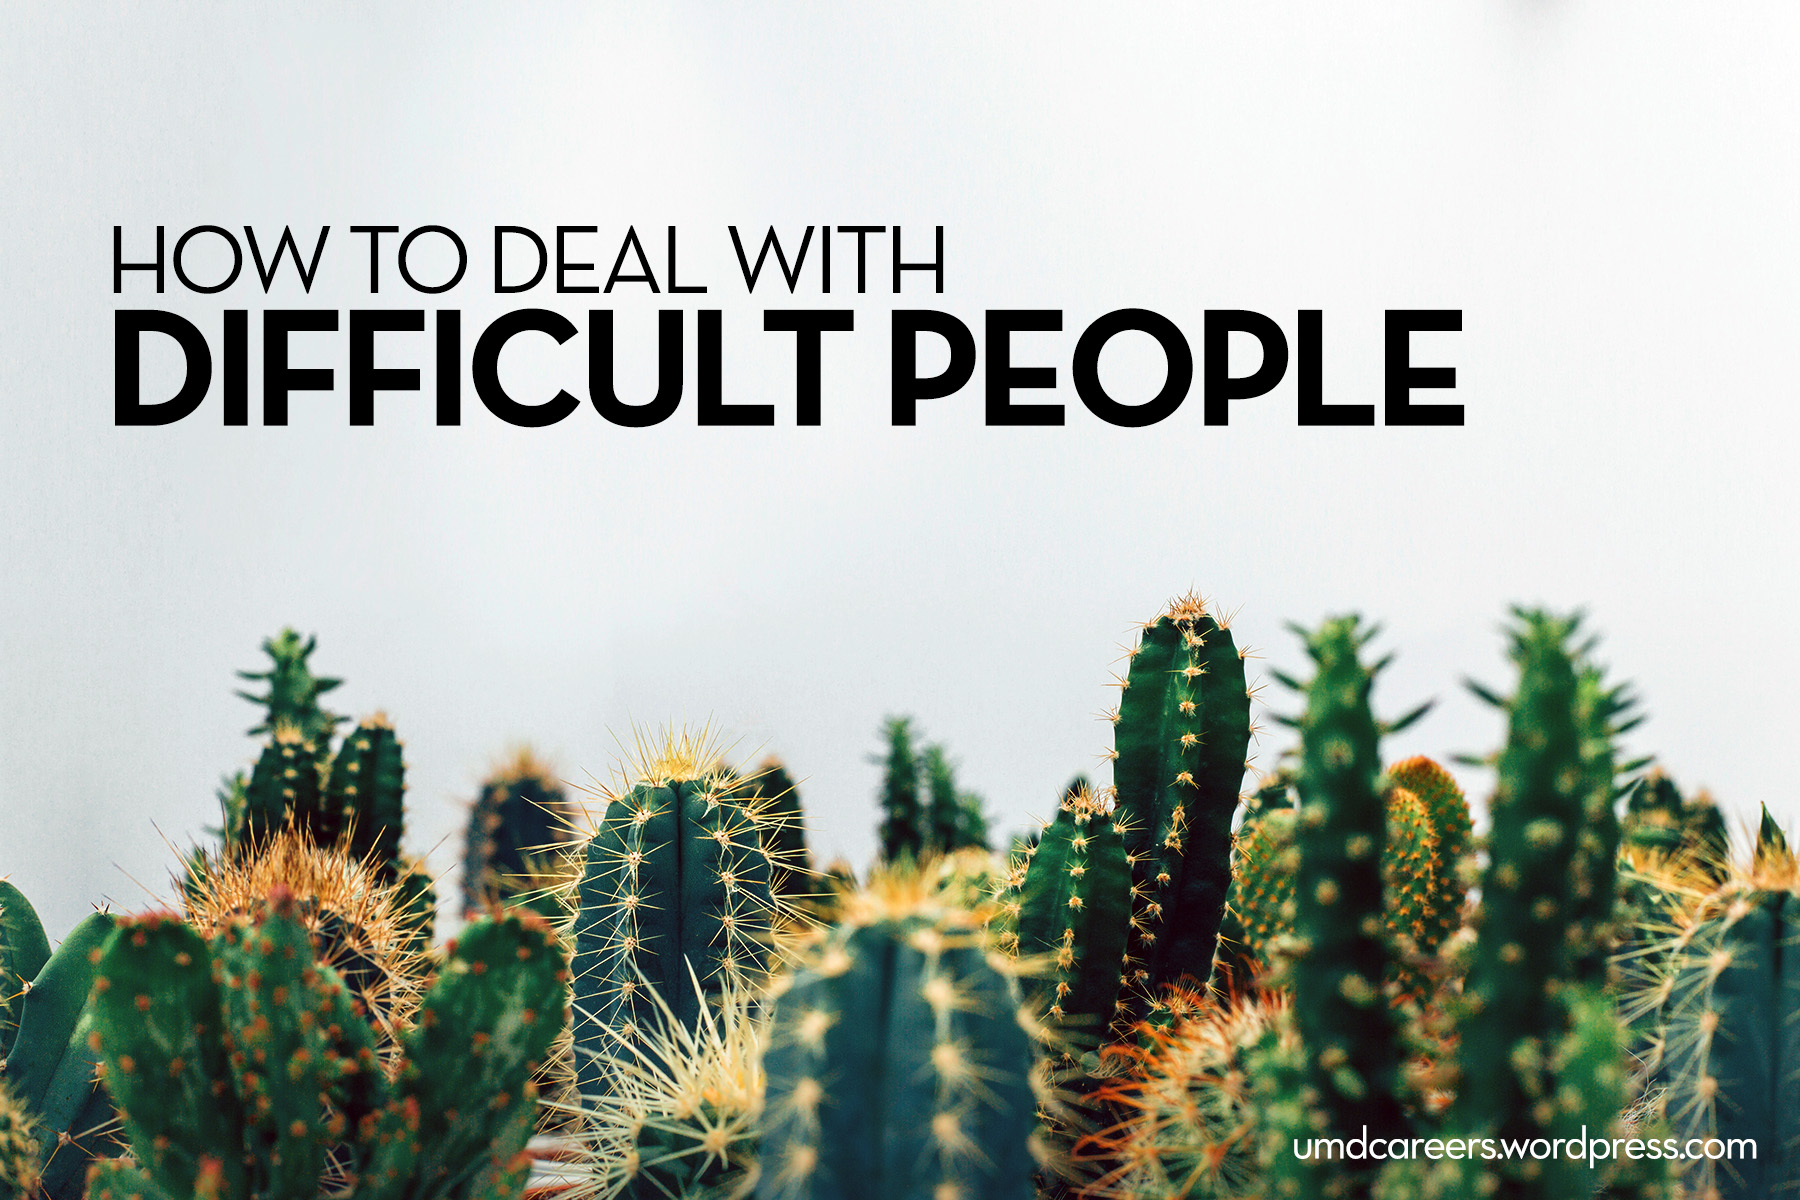 Image: green cacti on a white background. Text: how to deal with difficult people